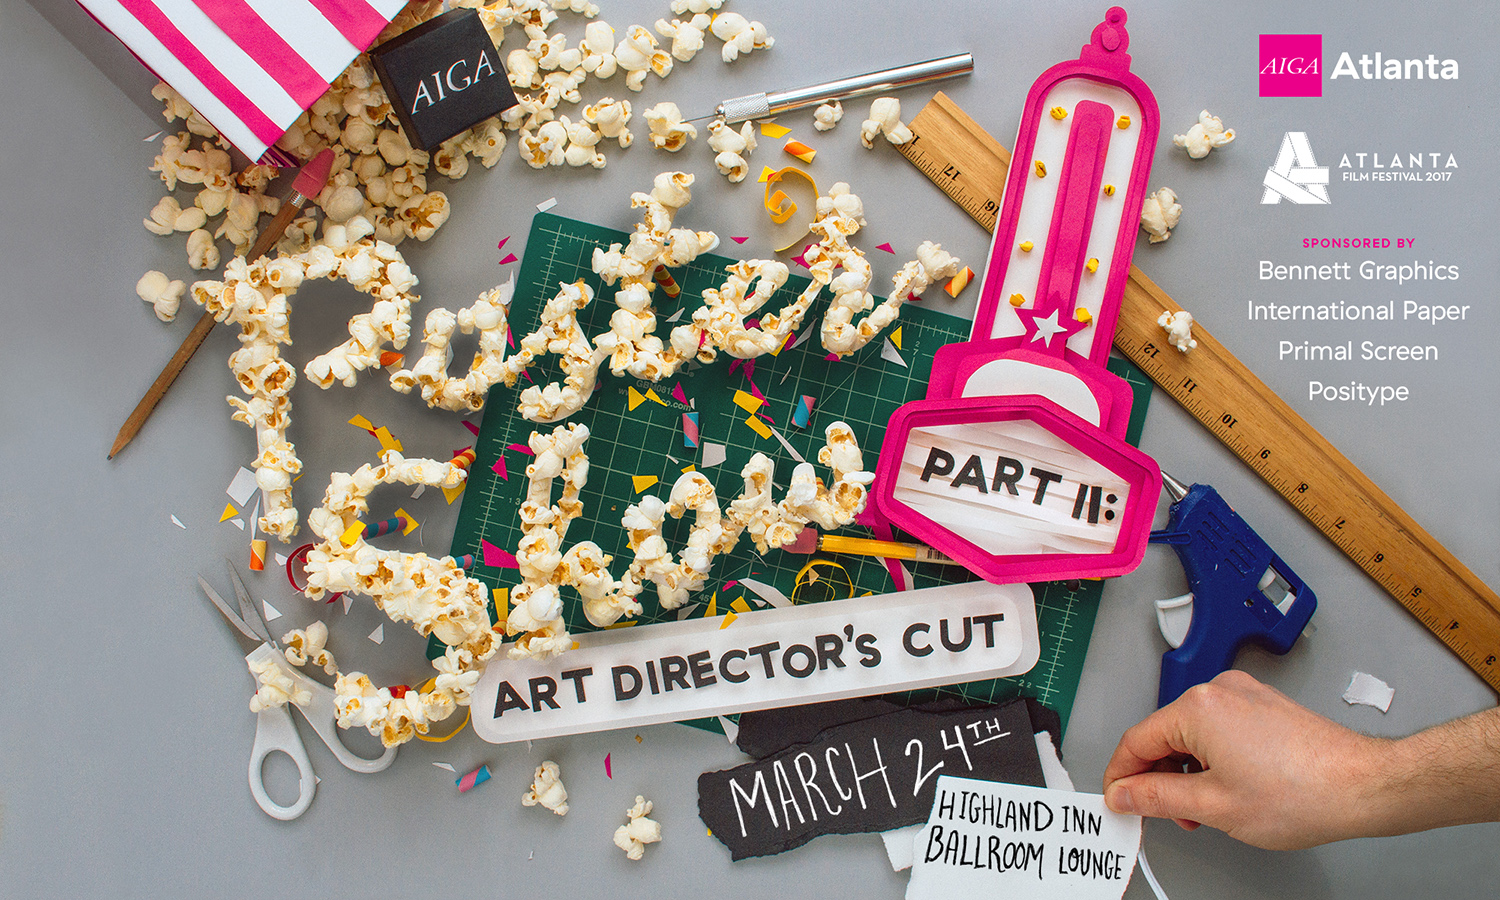 AIGA Atlanta Poster Show Part Two Art Director's Cut, promotional artwork for call for submissions, hand made paper craft popcorn lettering.